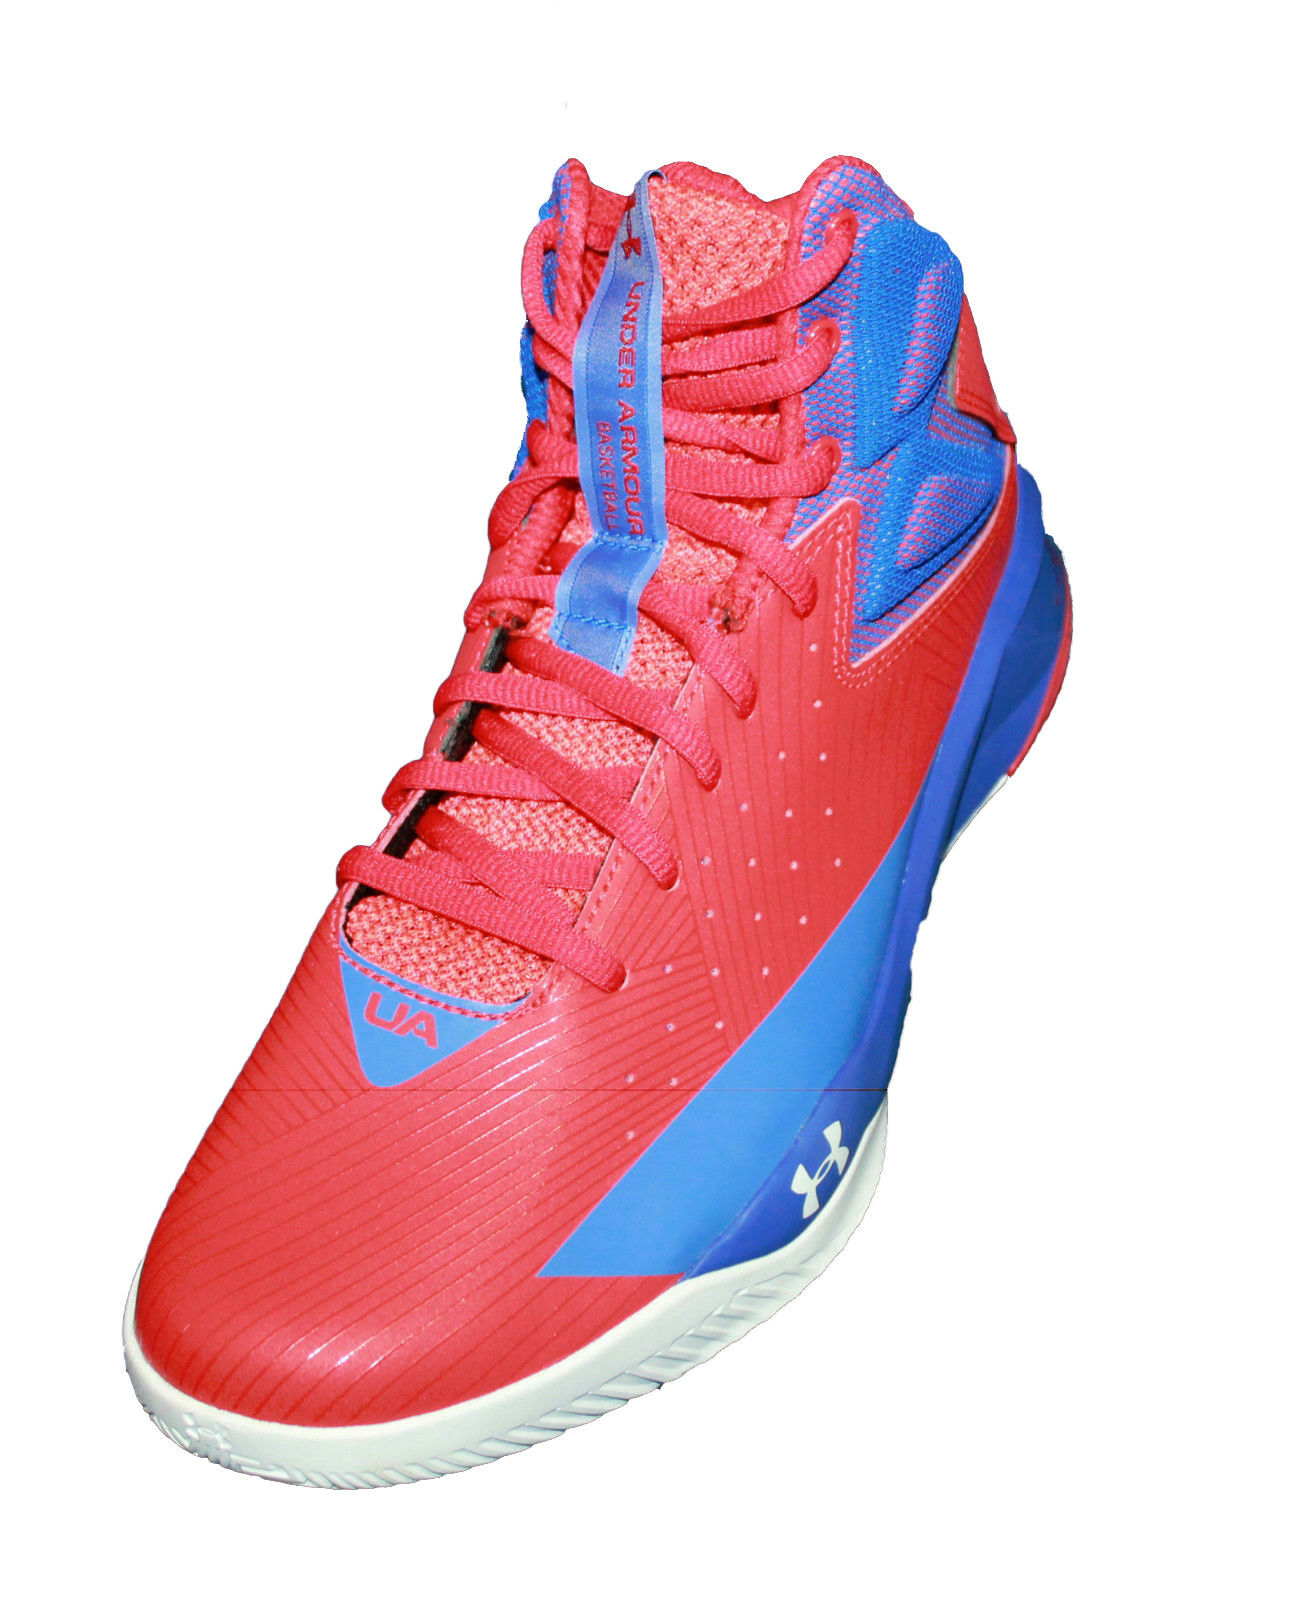 Uomo Under Armour Rocket Basketball Shoes  - 1264224-669